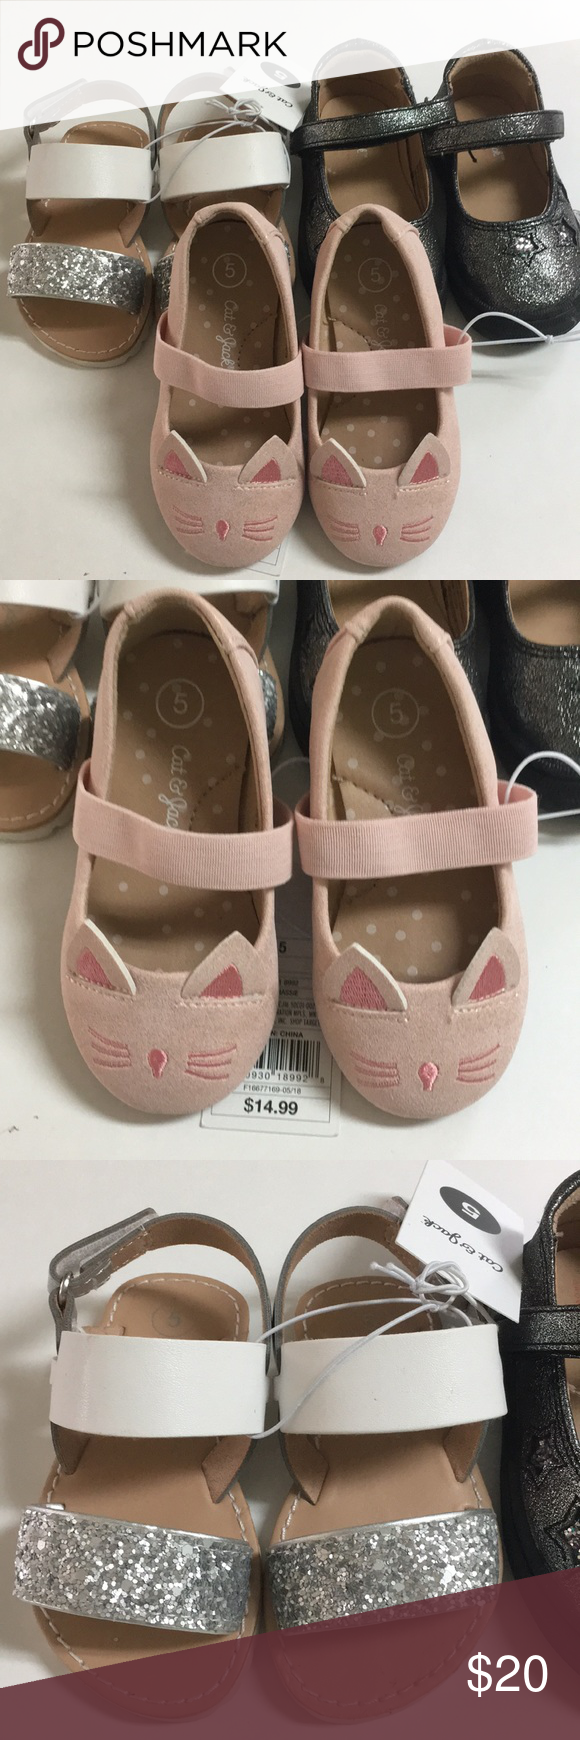 Toddler girls Shoes Brand new cat